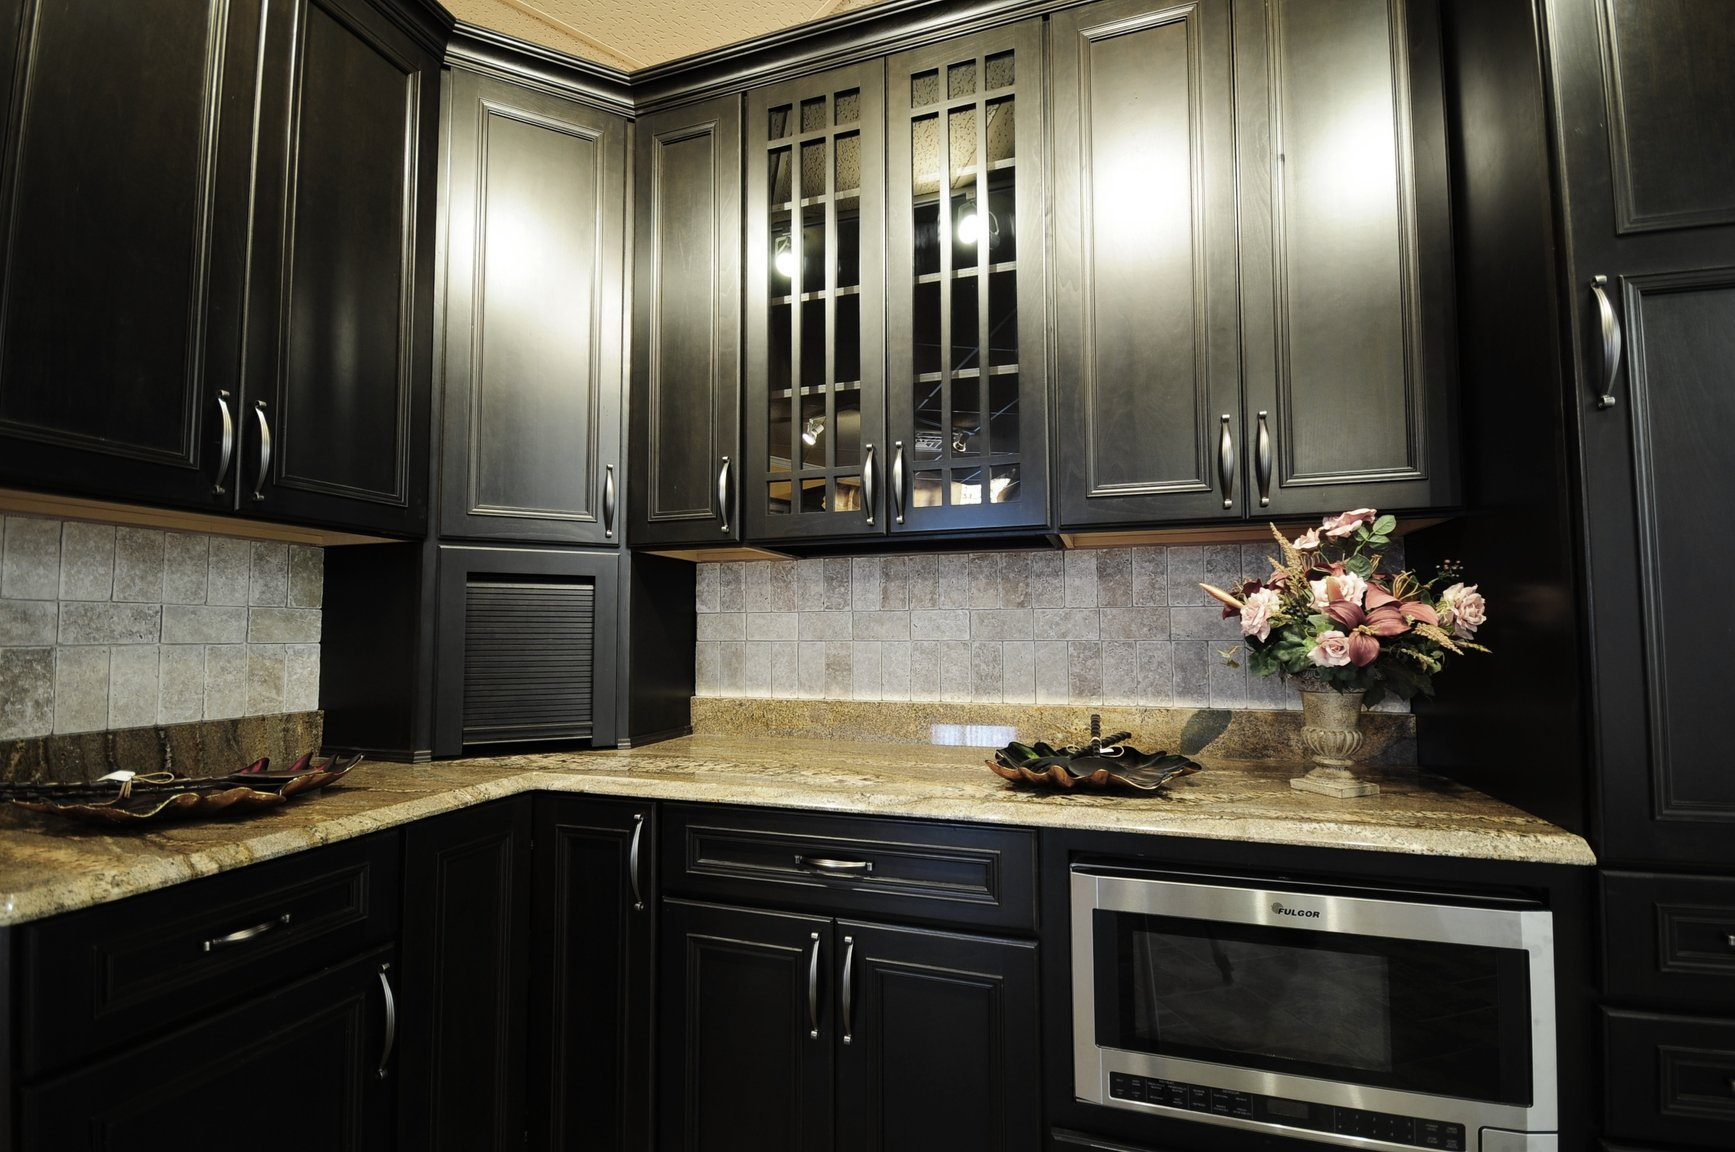 kitchen cabinets surrey bc custom kitchen cabinets. Black Bedroom Furniture Sets. Home Design Ideas